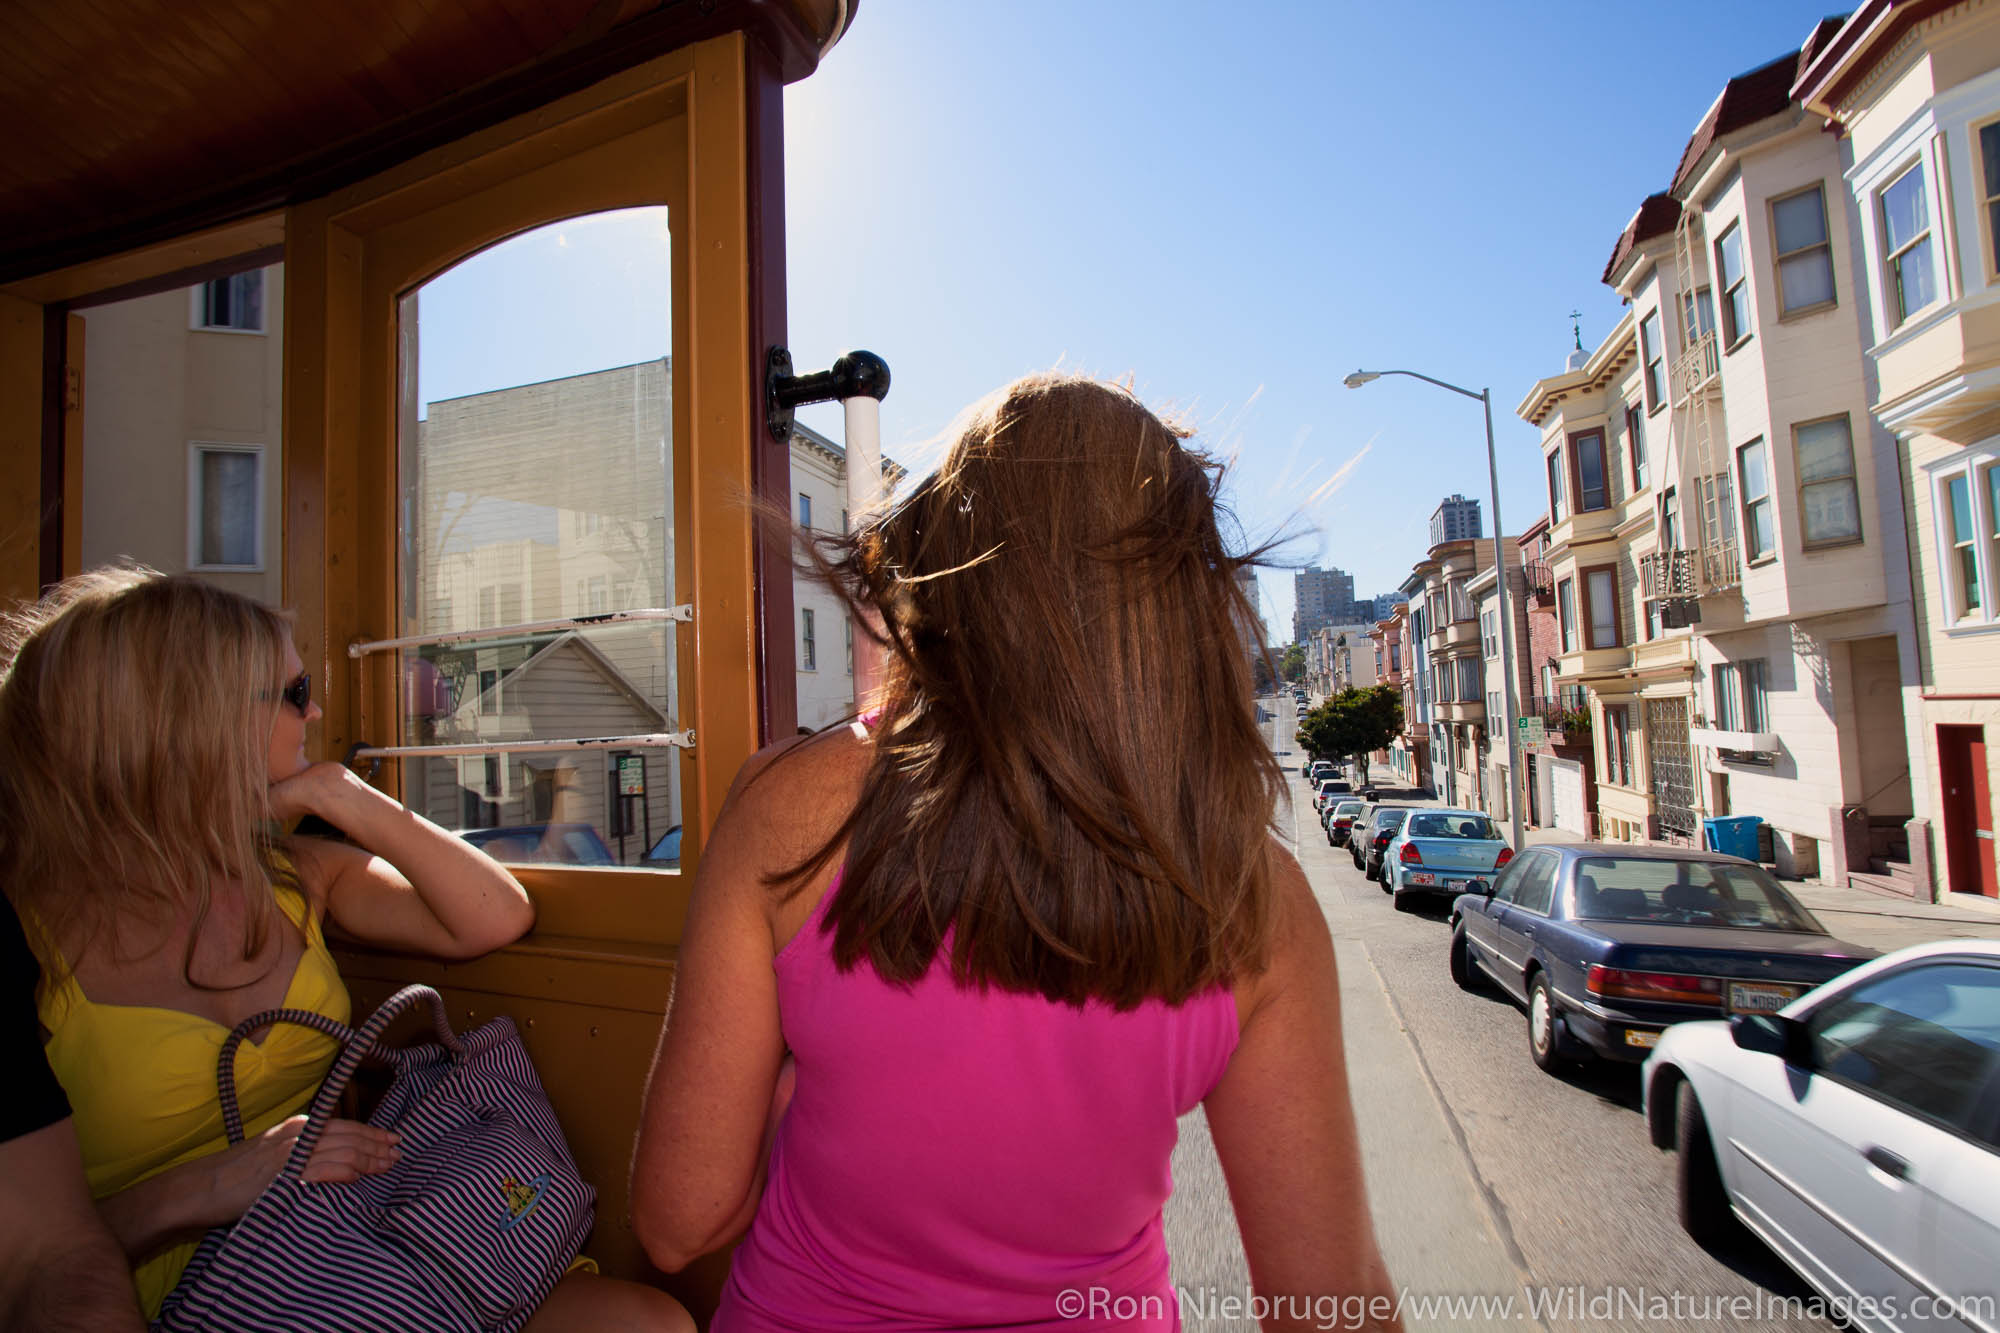 Riding the famous cable cars in San Francisco, CA